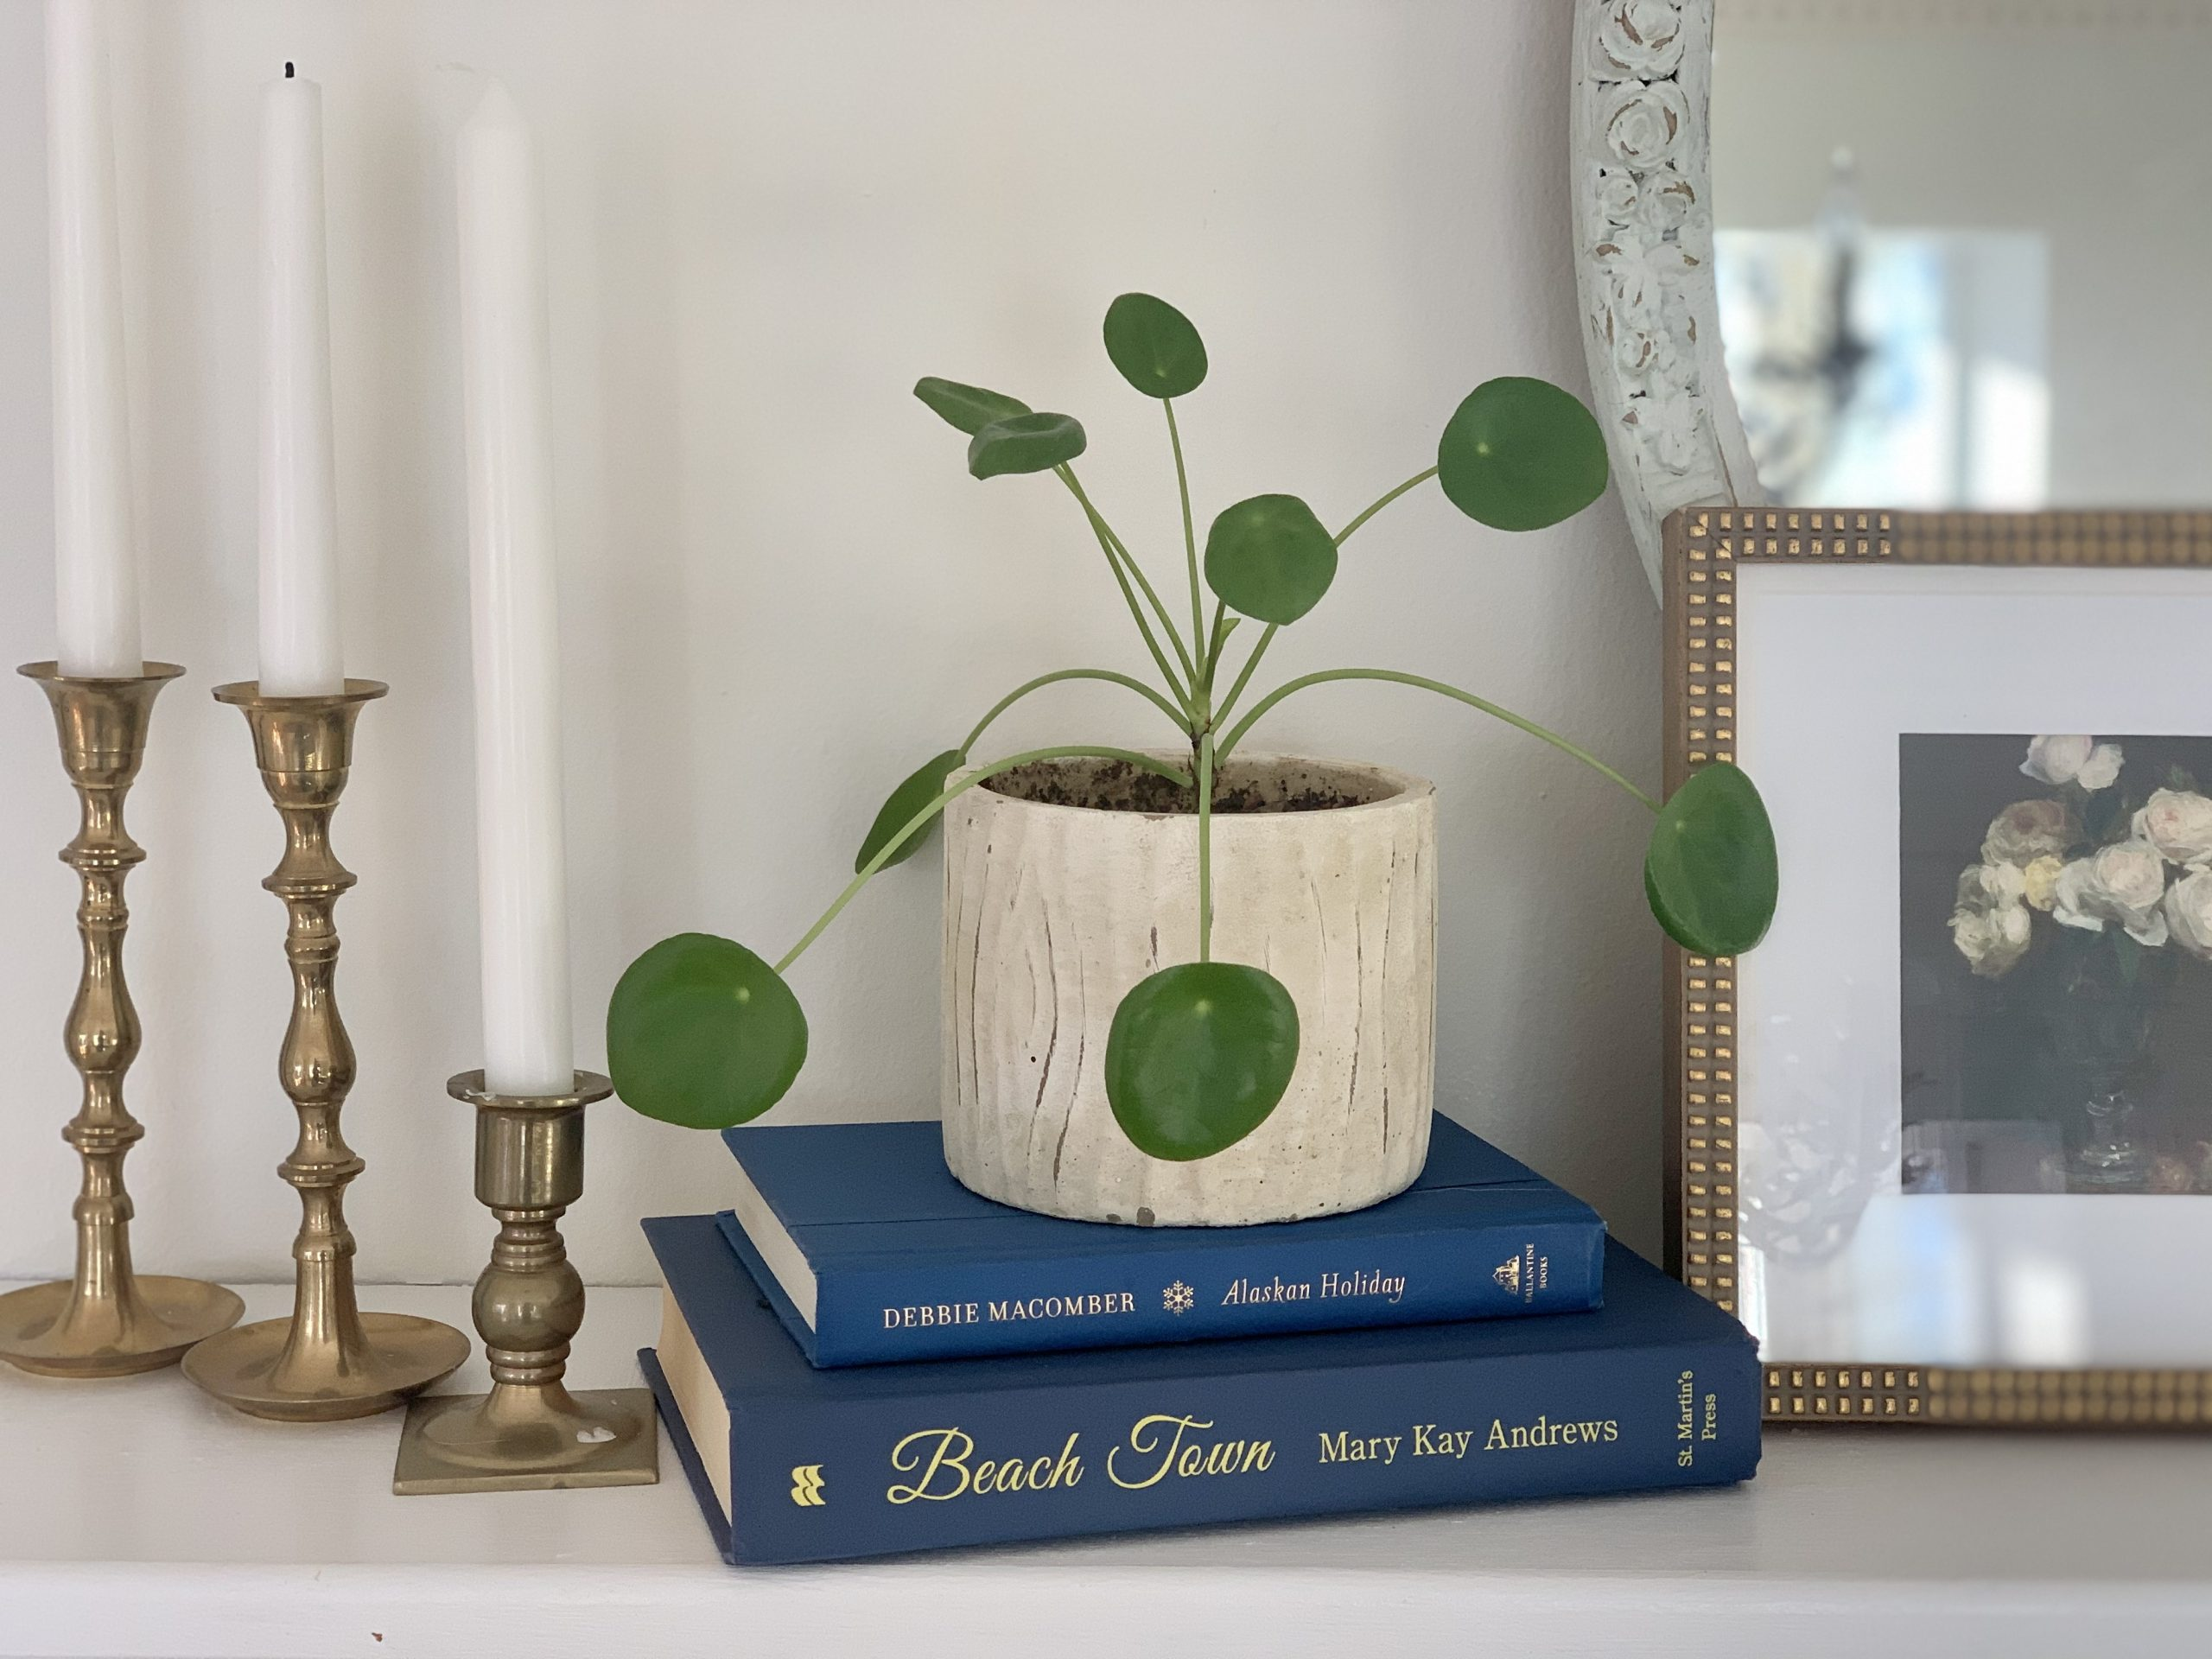 Top 5 Decor Books & Styling Books in Your Home~ White Cottage Home &. Living